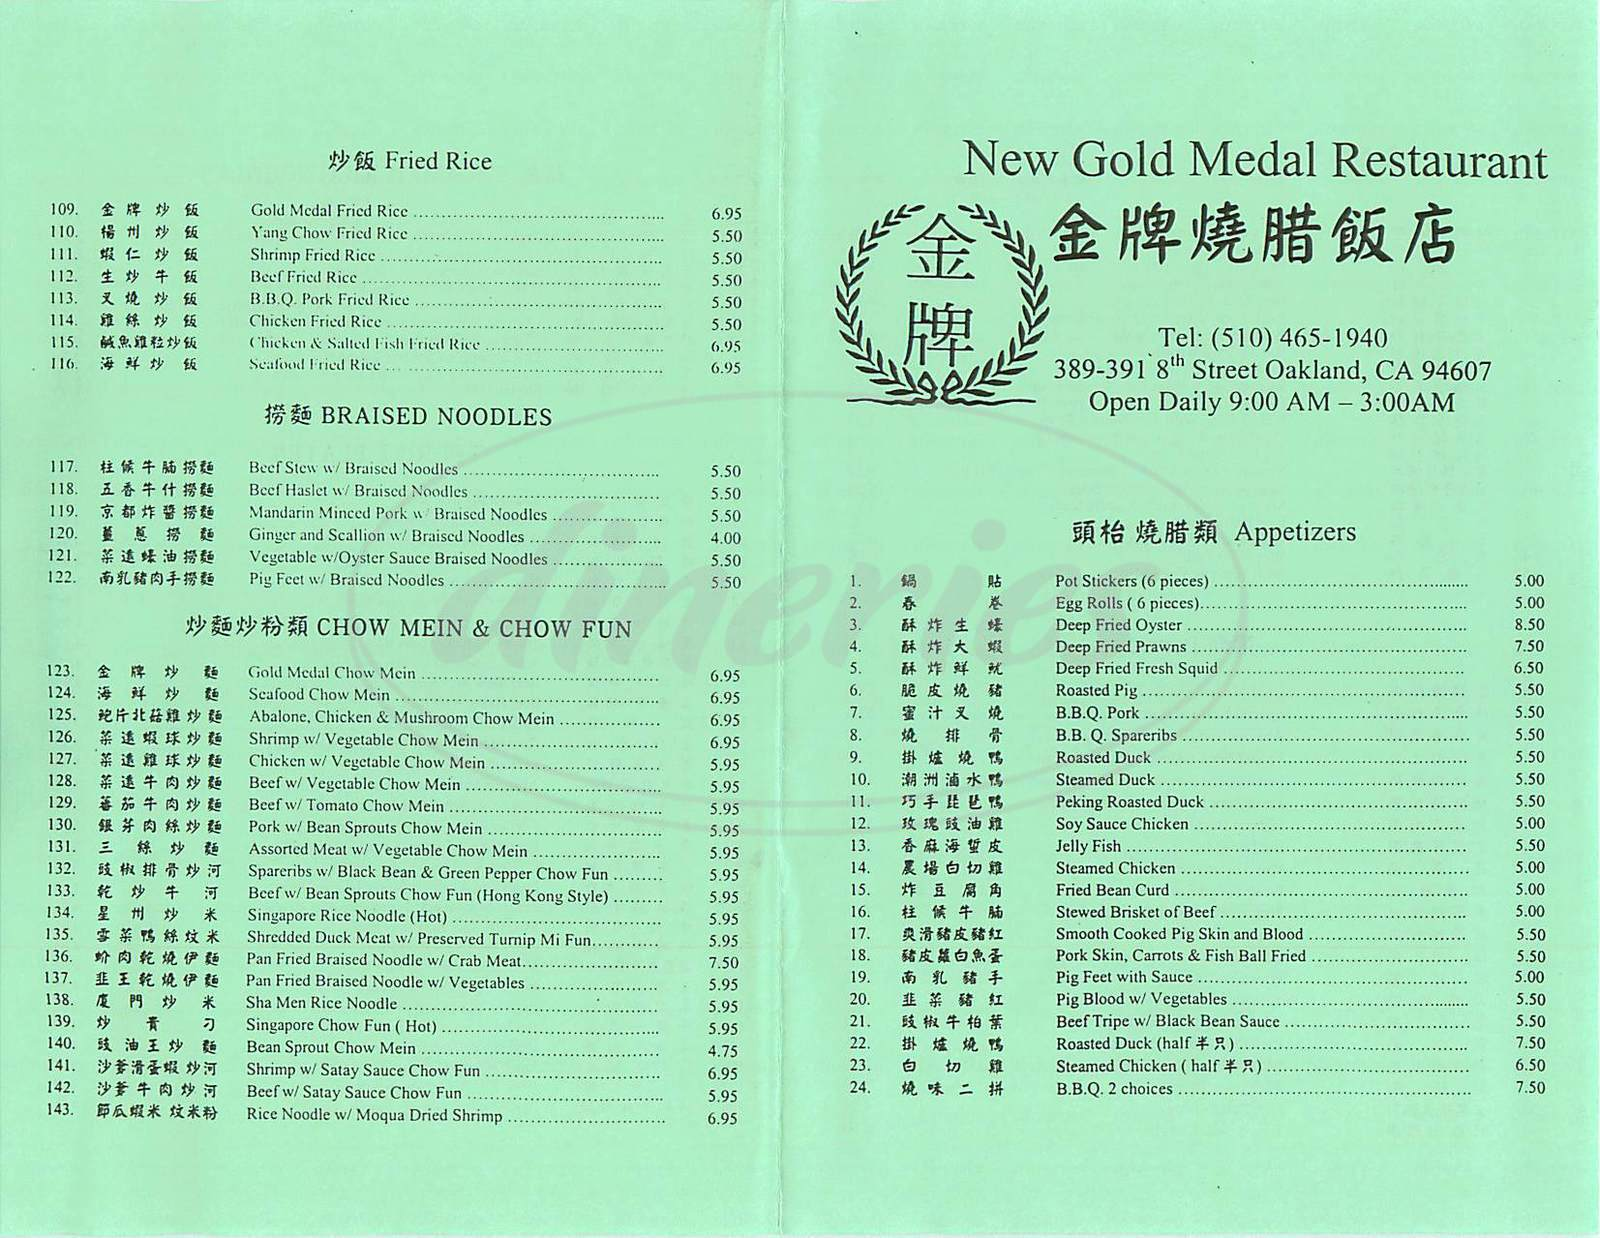 menu for New Gold Medal